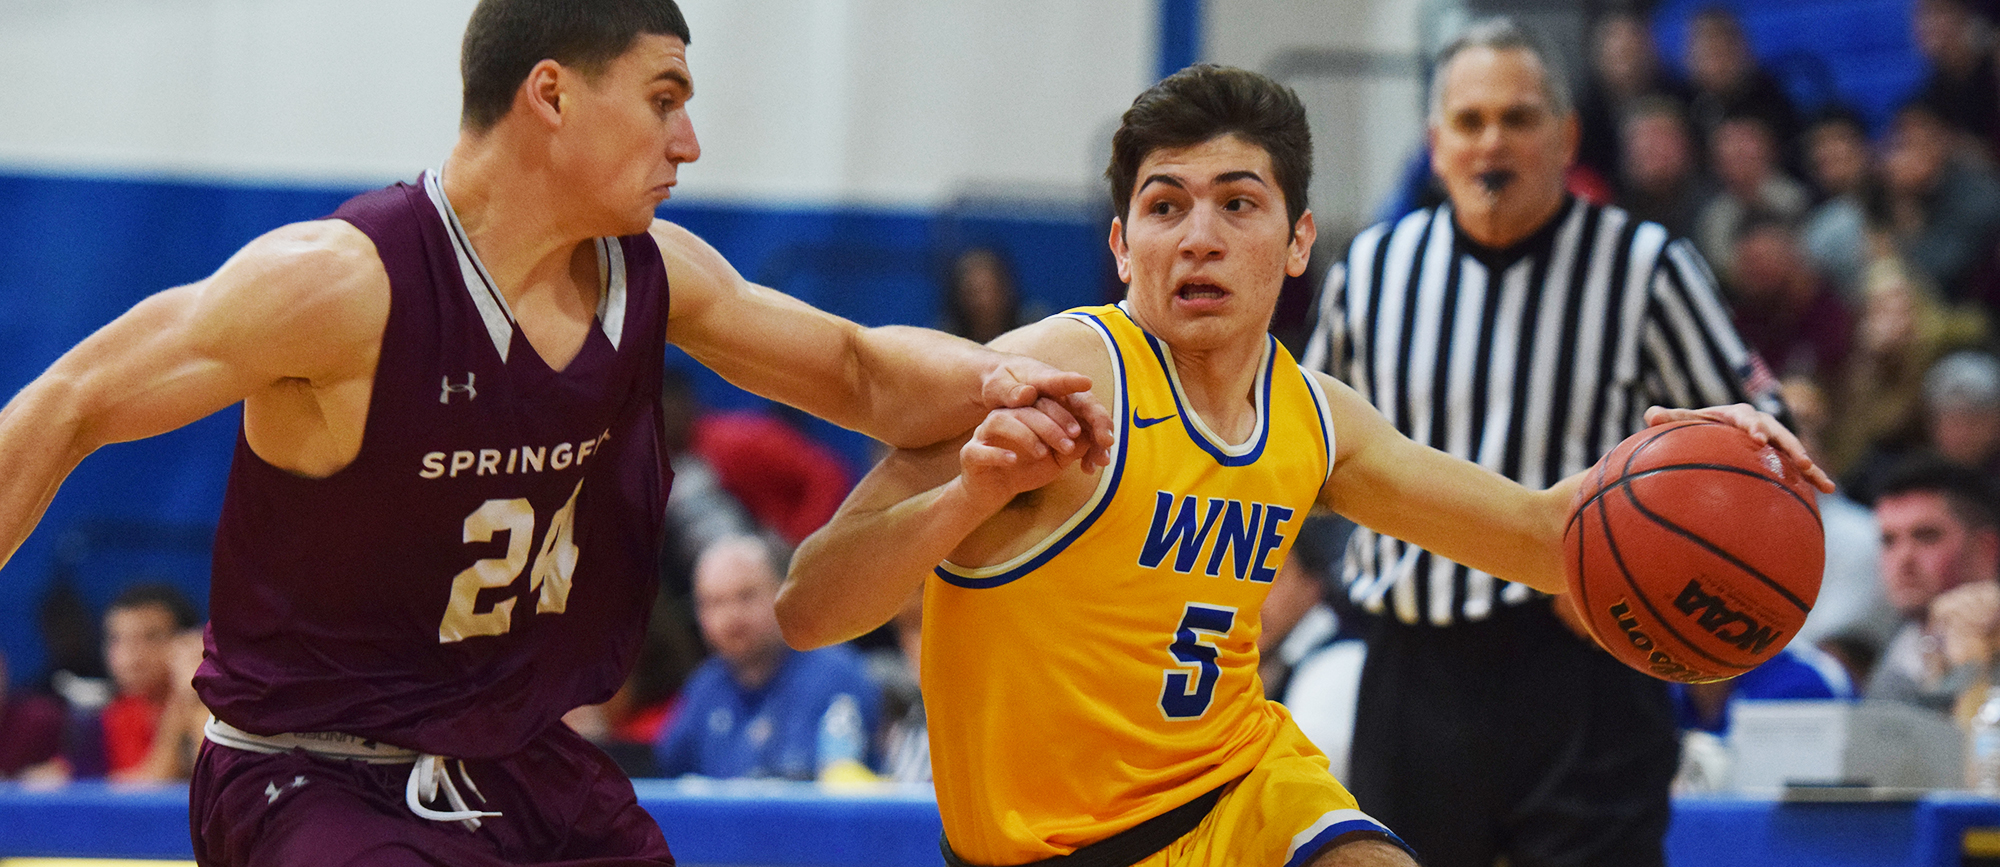 Freshman Antonio Brancato scored a season-high 23 points in Western New England's 99-96 loss to Nichols on Tuesday. (Photo by Rachael Margossian)